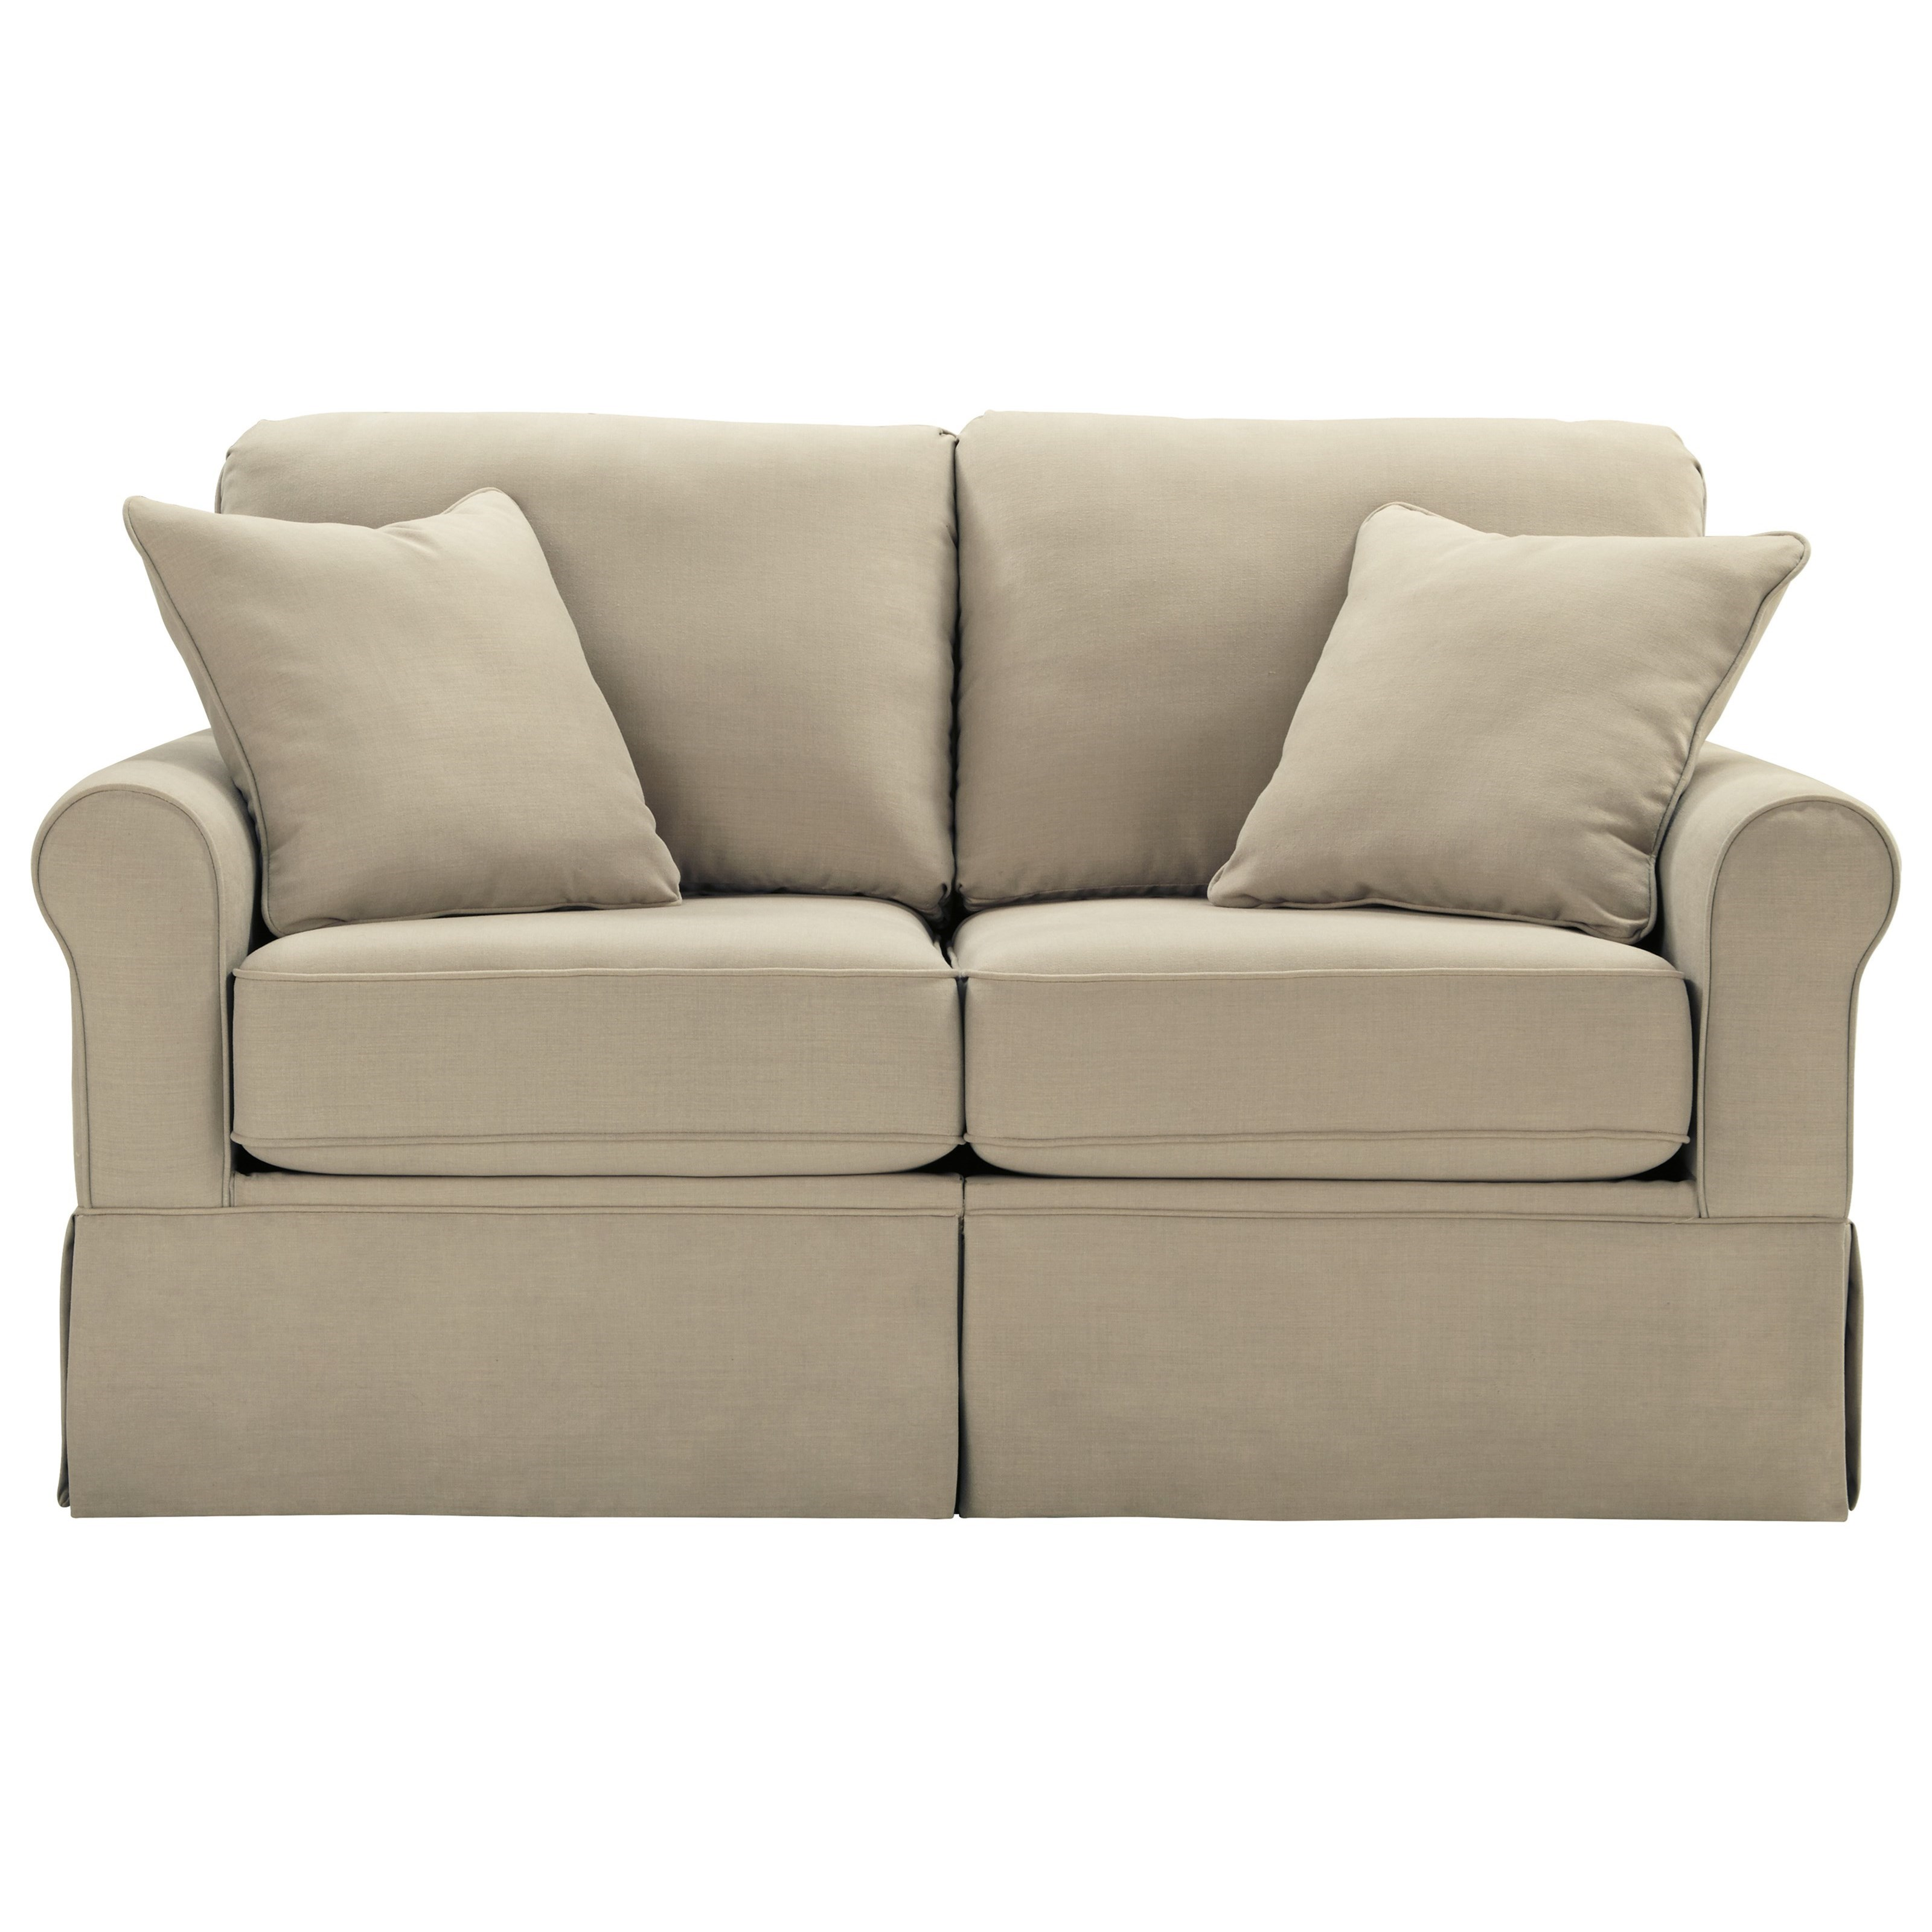 Senchal Loveseat by Signature Design by Ashley at Lapeer Furniture & Mattress Center